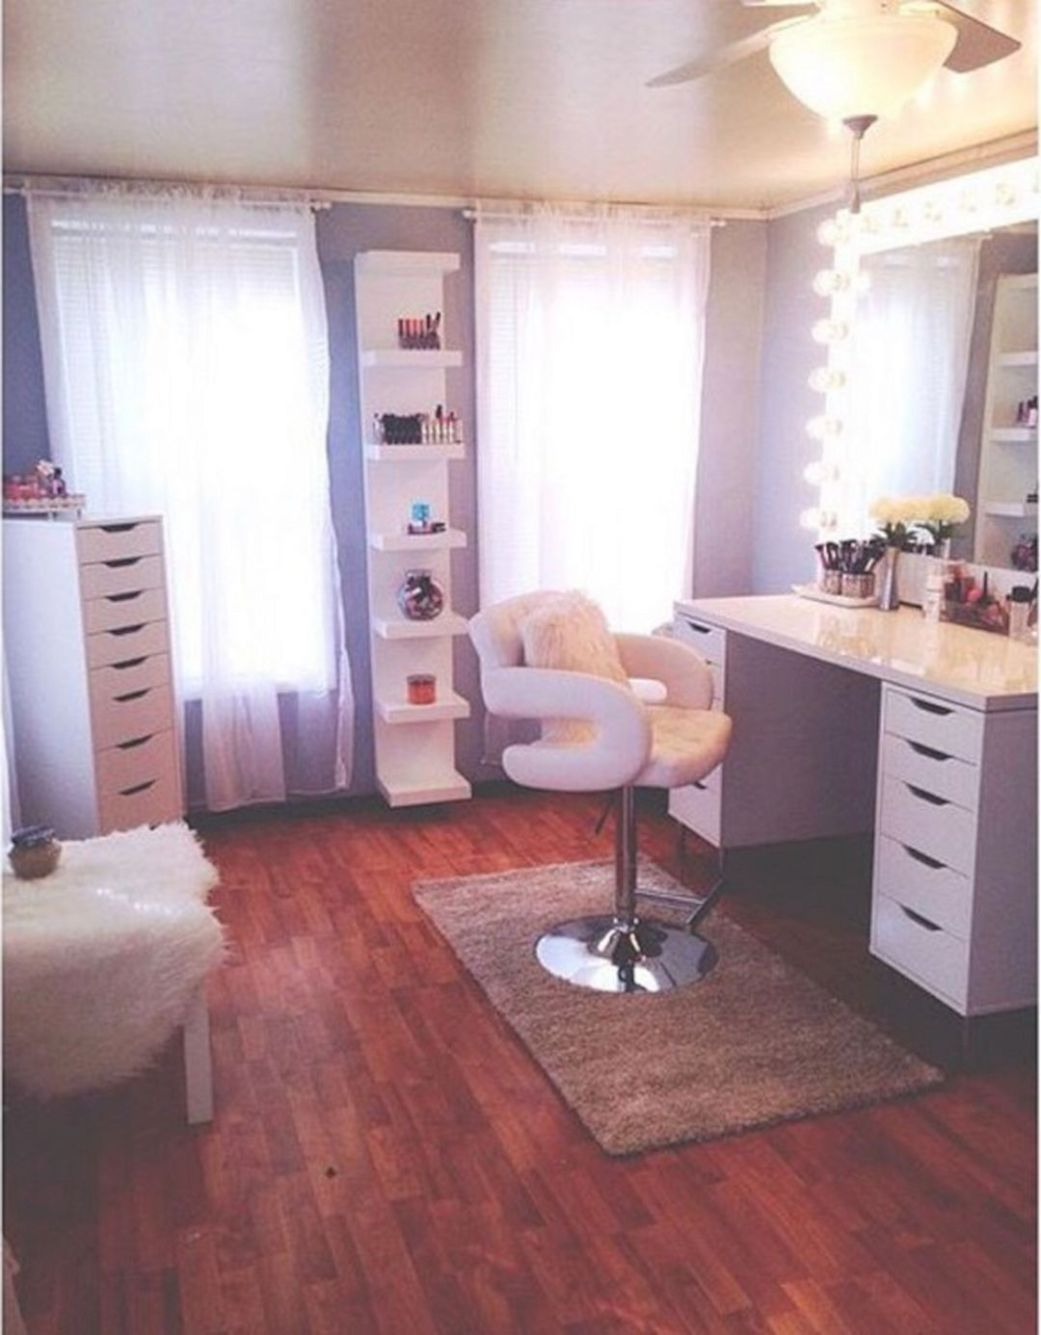 Glam Room Decoration Ideas 6 Makeup Room Diy Glam Room Interior